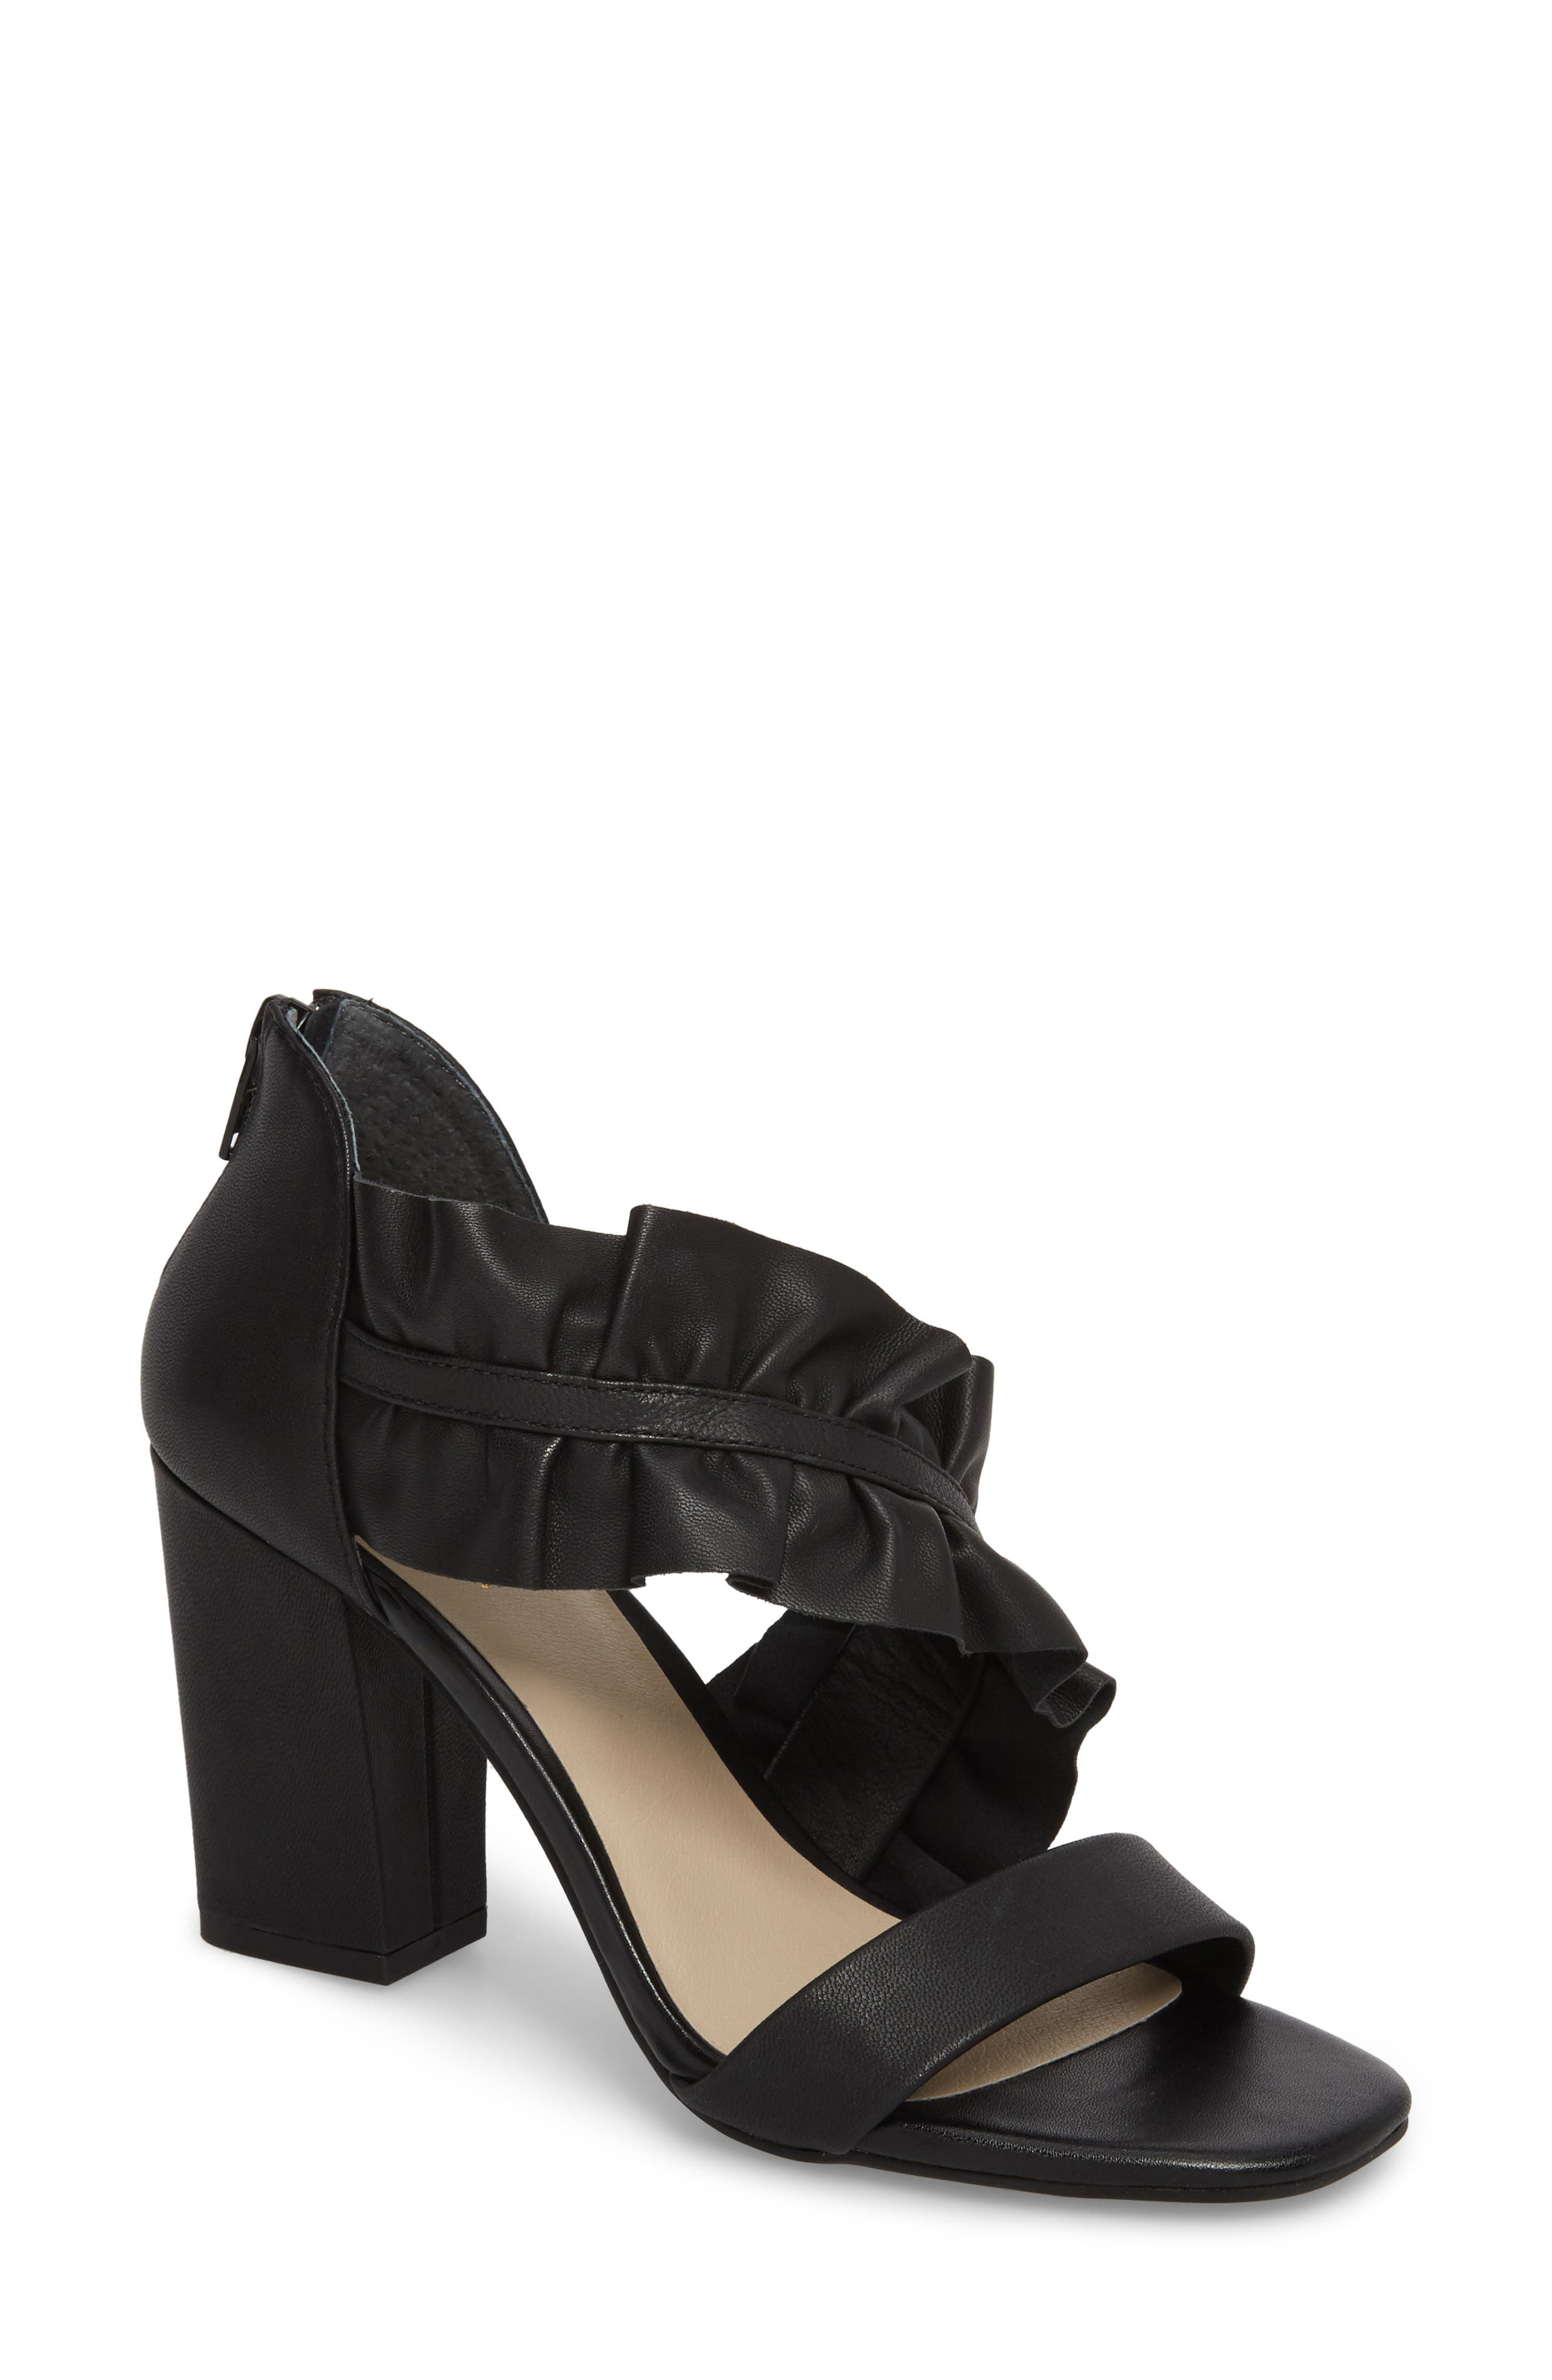 To-Do List Sandal,                         Main,                         color, Black Leather